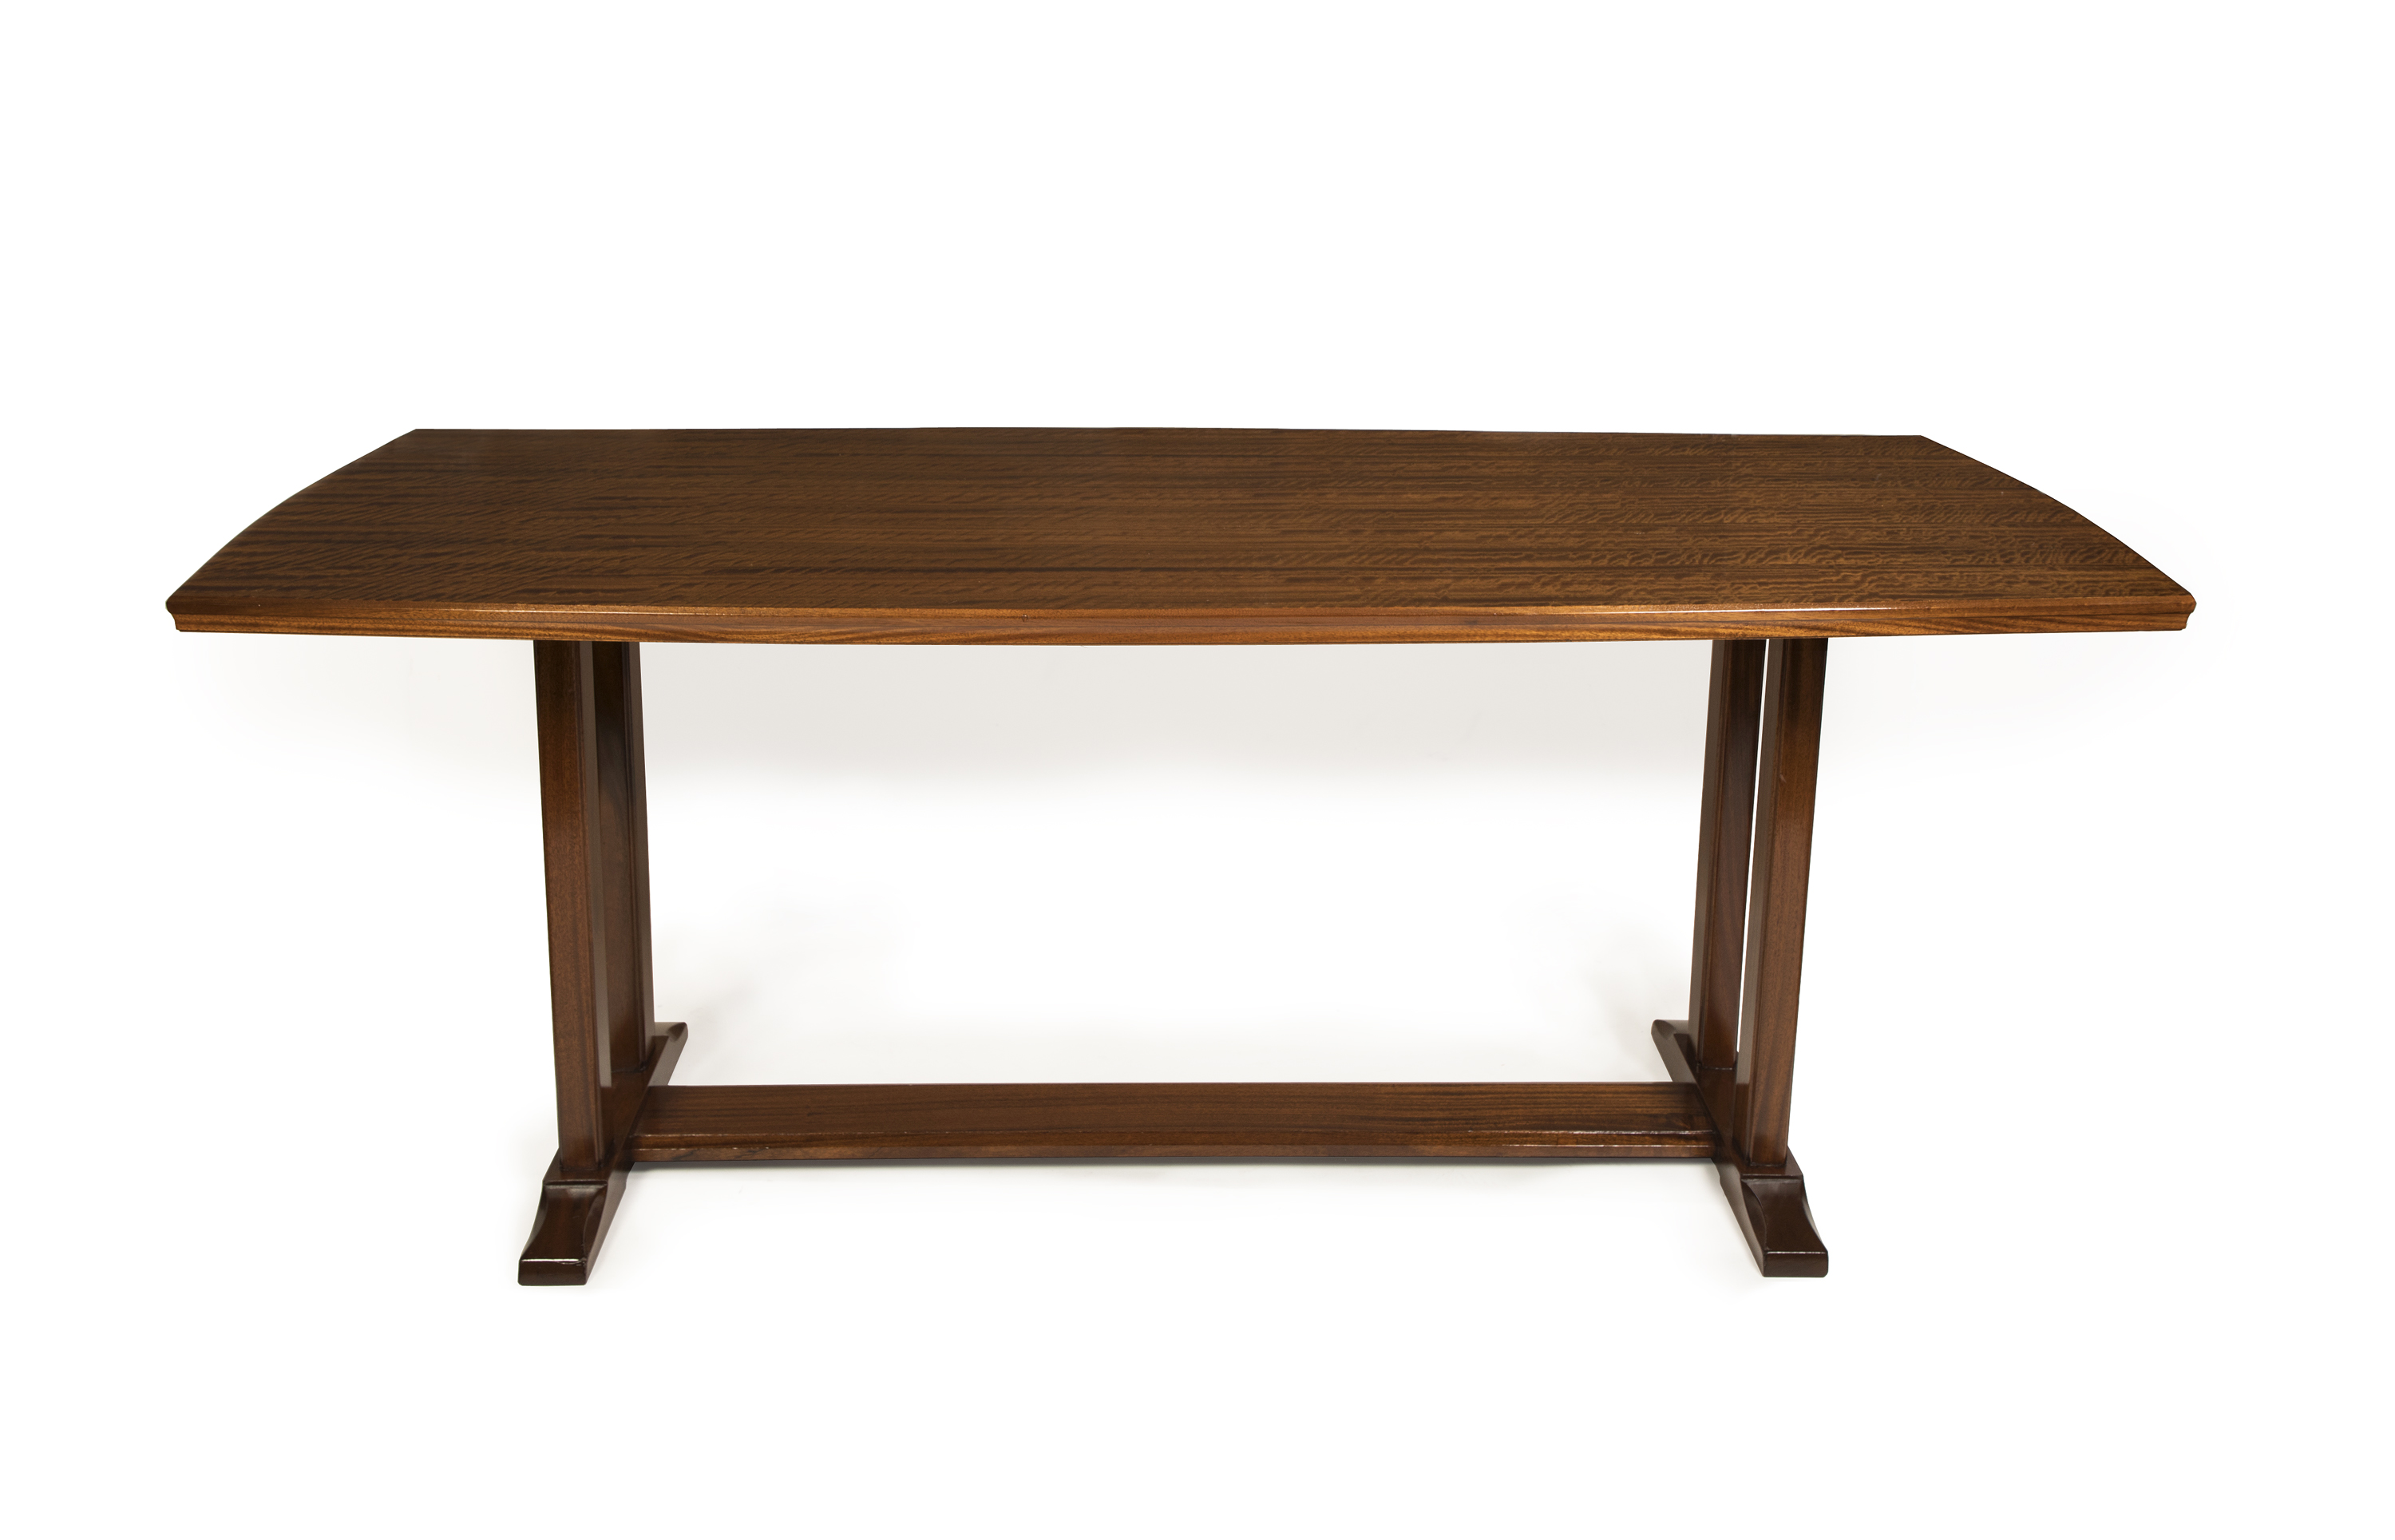 HEAL & SON LONDON DINING TABLE